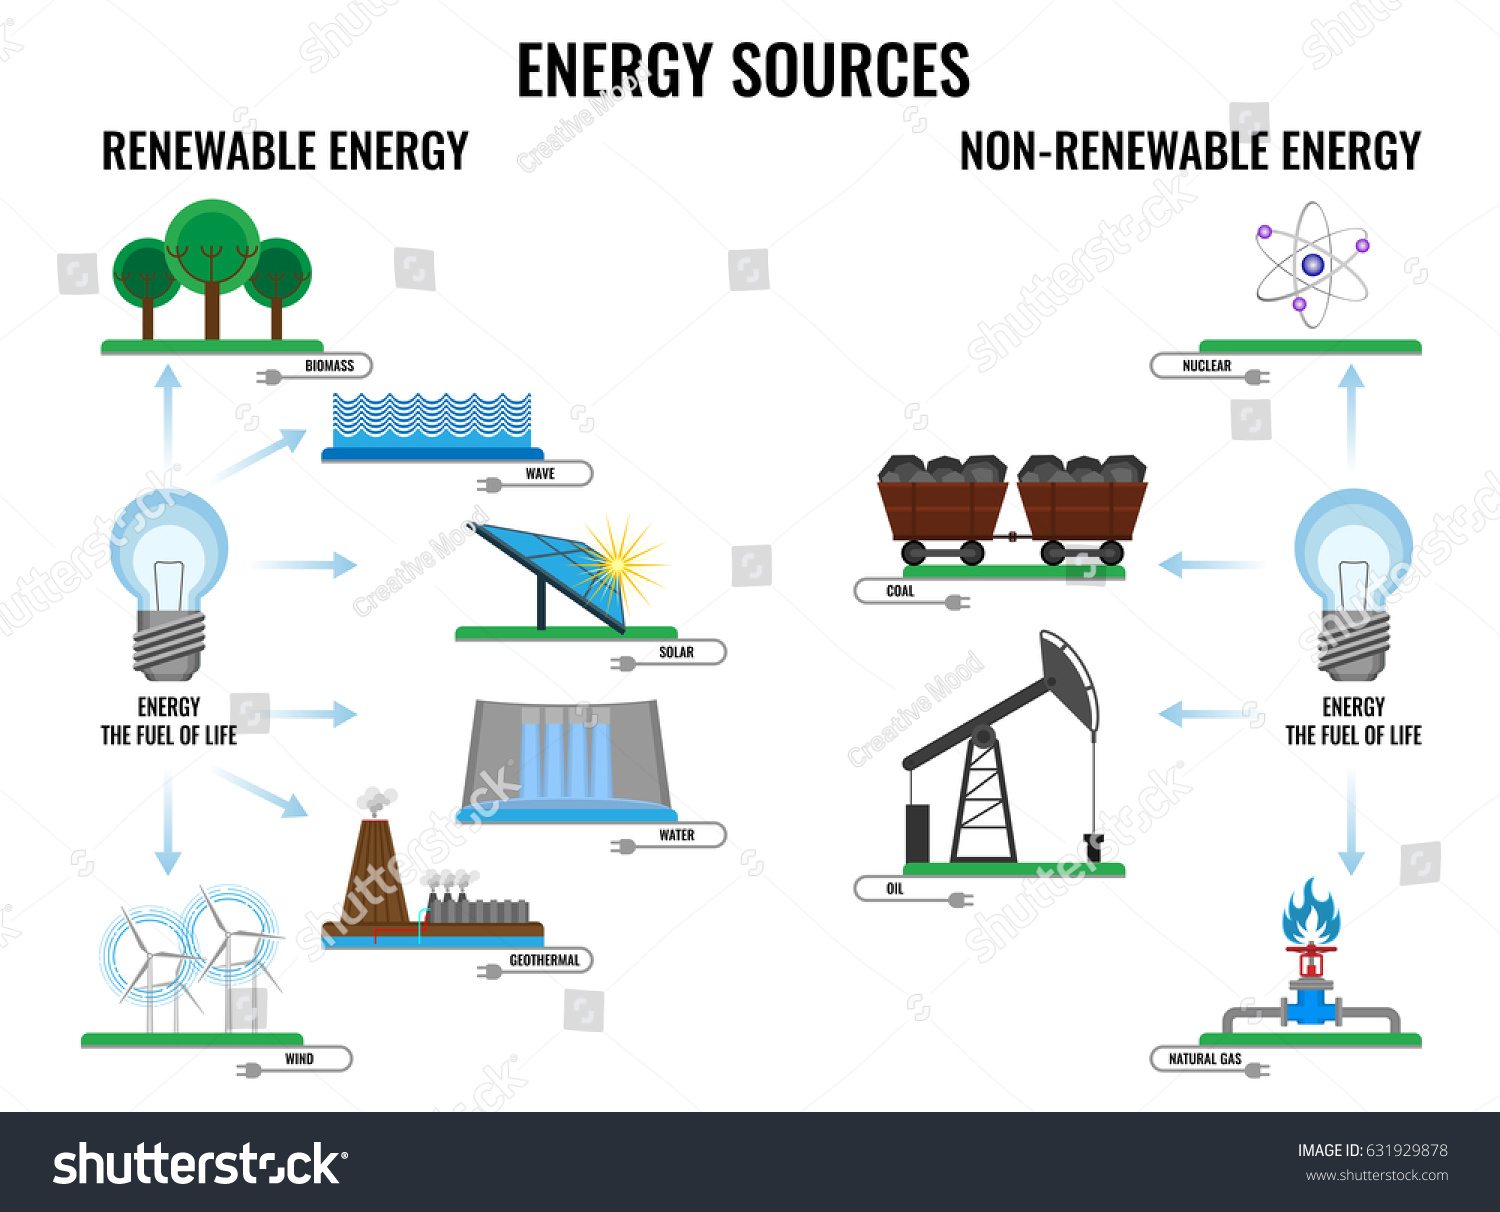 Renewable Nonrenewable Energy Sources Poster On Stock